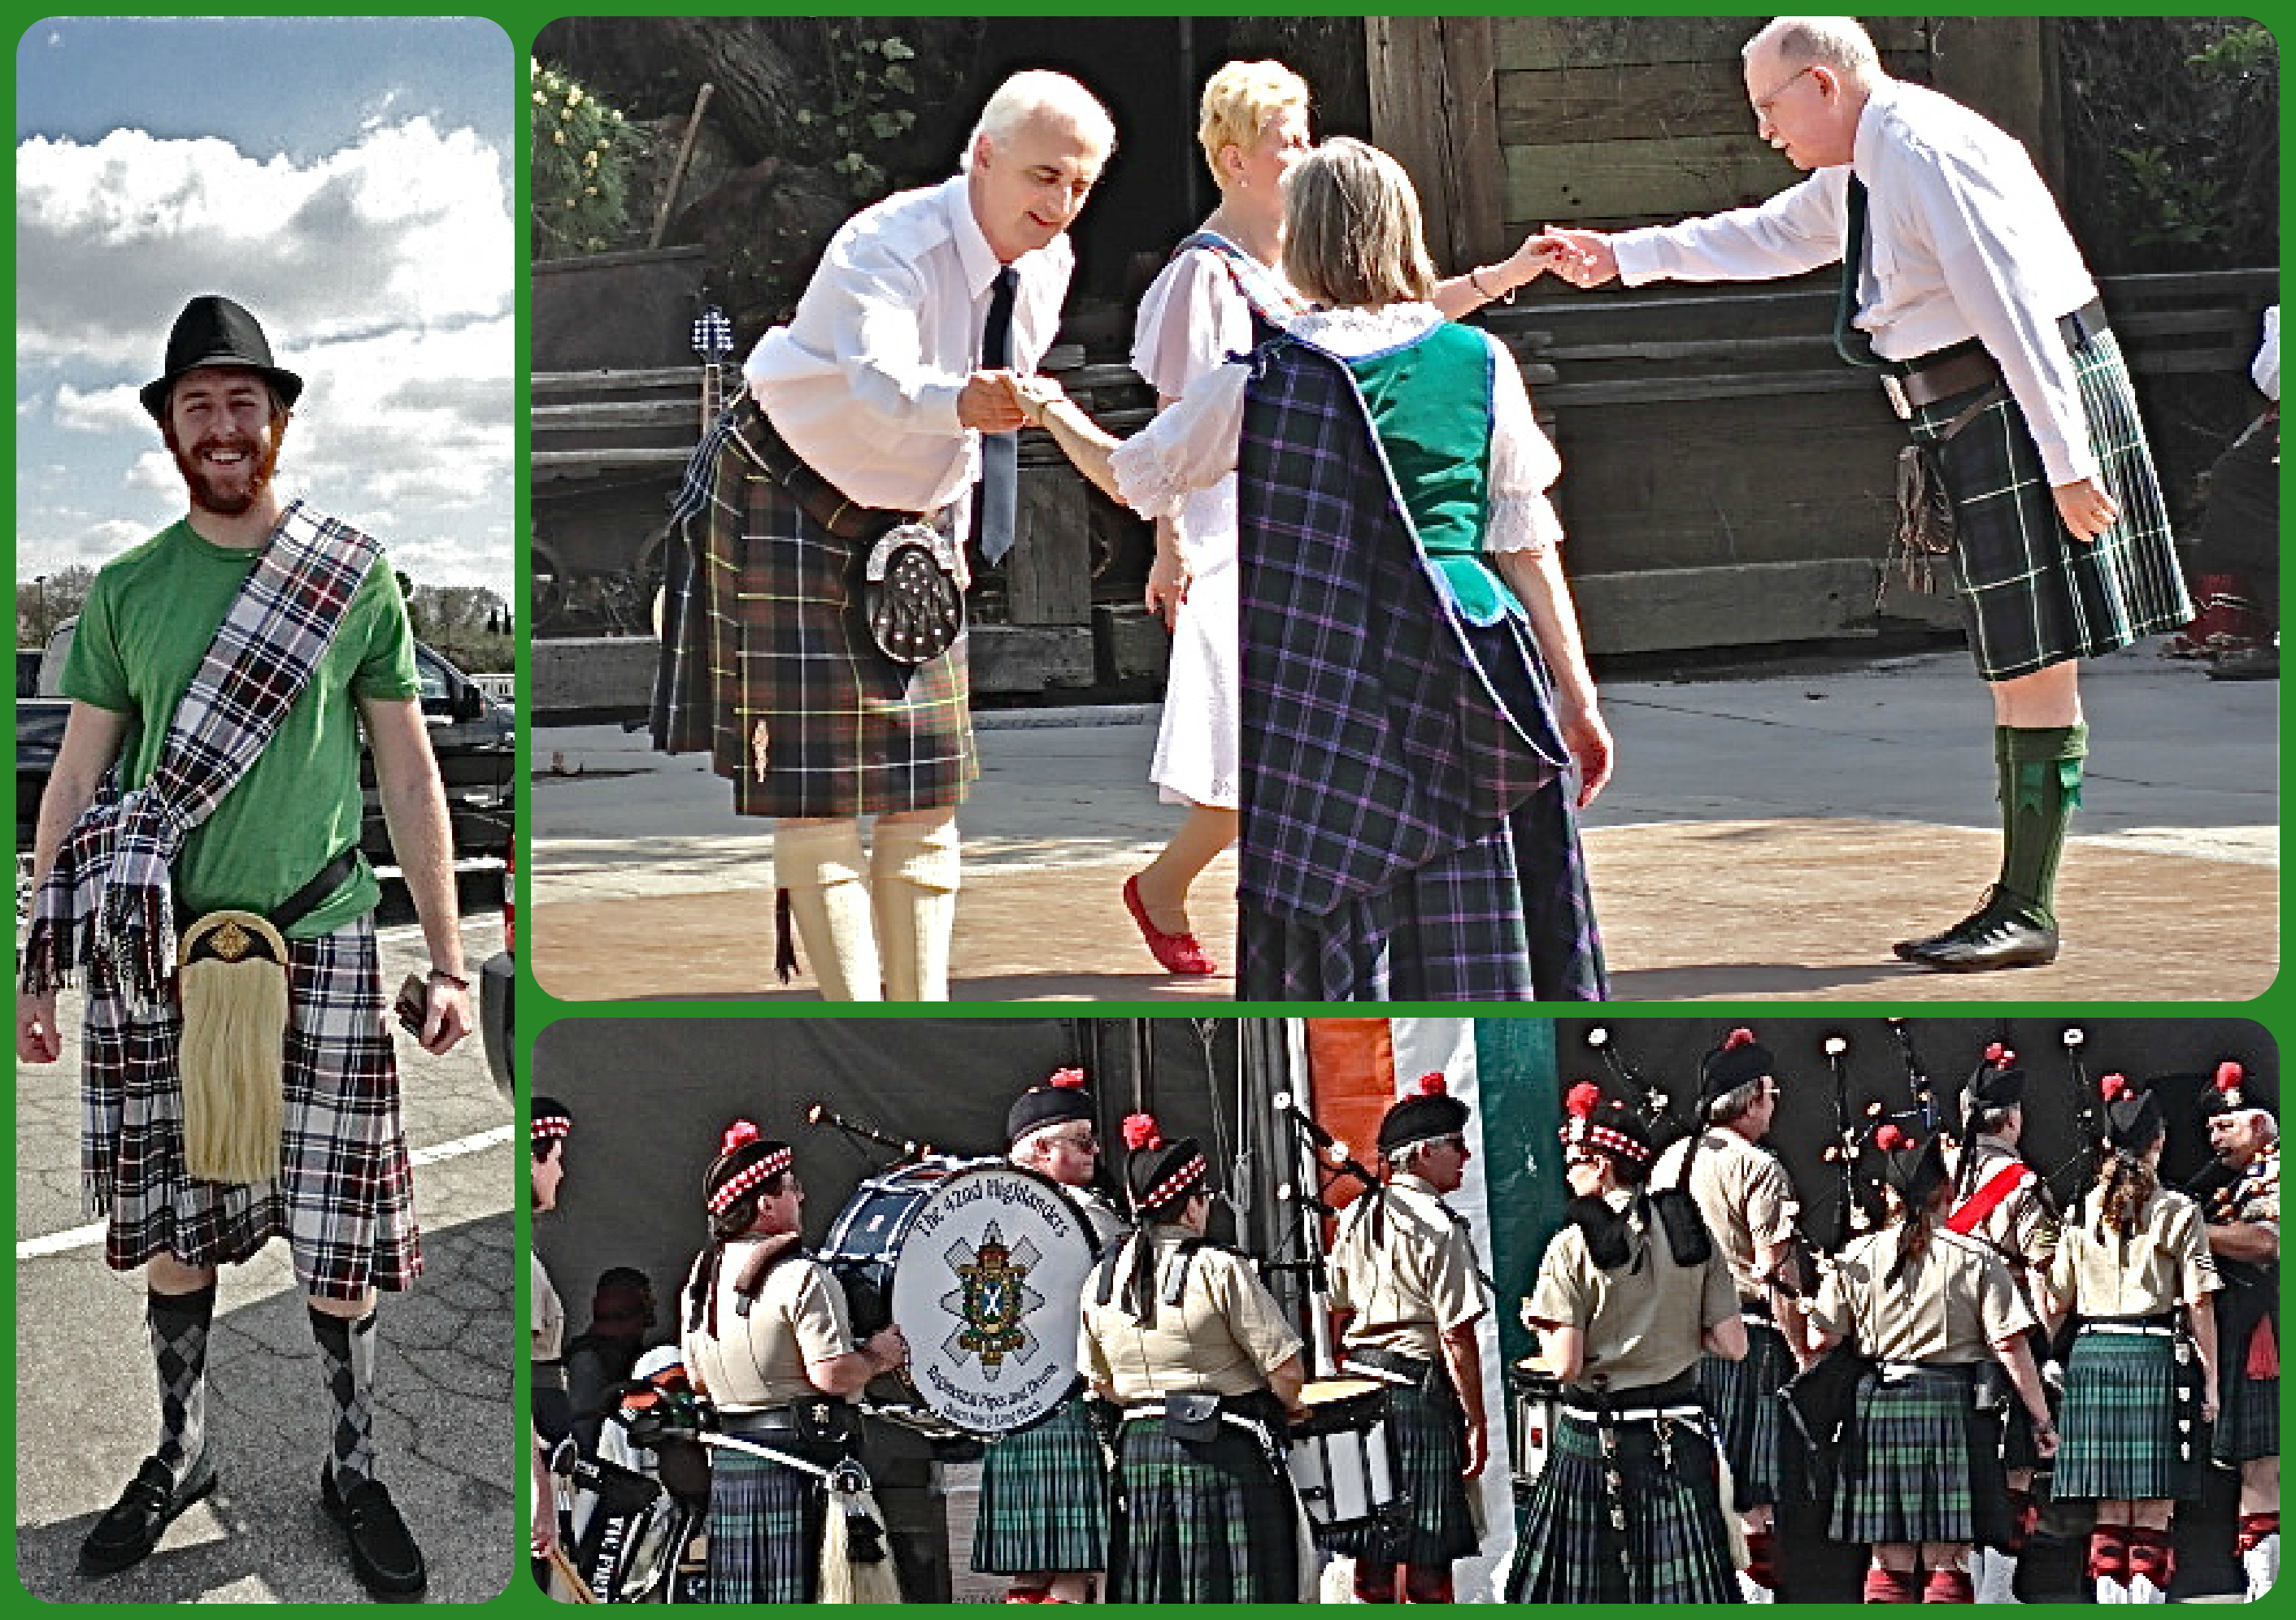 kilts, Irish dancers, bagpipes, argyle socks, Irish festival, Los Angeles County Fairgrounds, Lynn Kelley, Lynn Kelley author, St. Patrick's Day, http://lynnkelleyauthor.wordpress.com